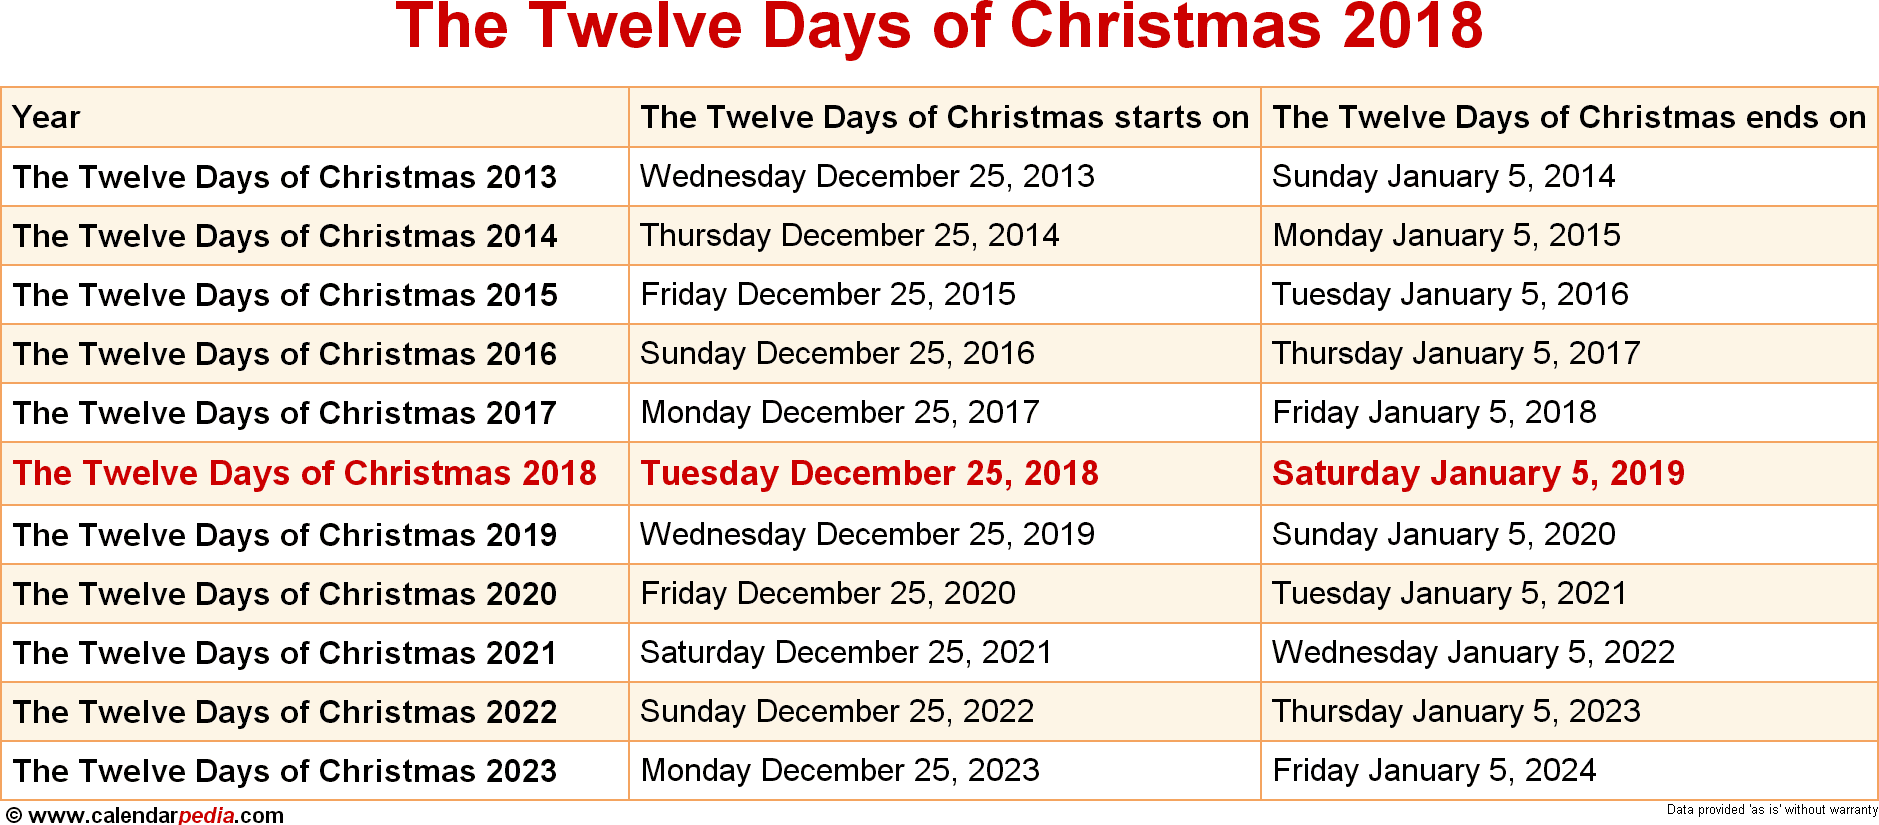 The Twelve Days of Christmas 2018